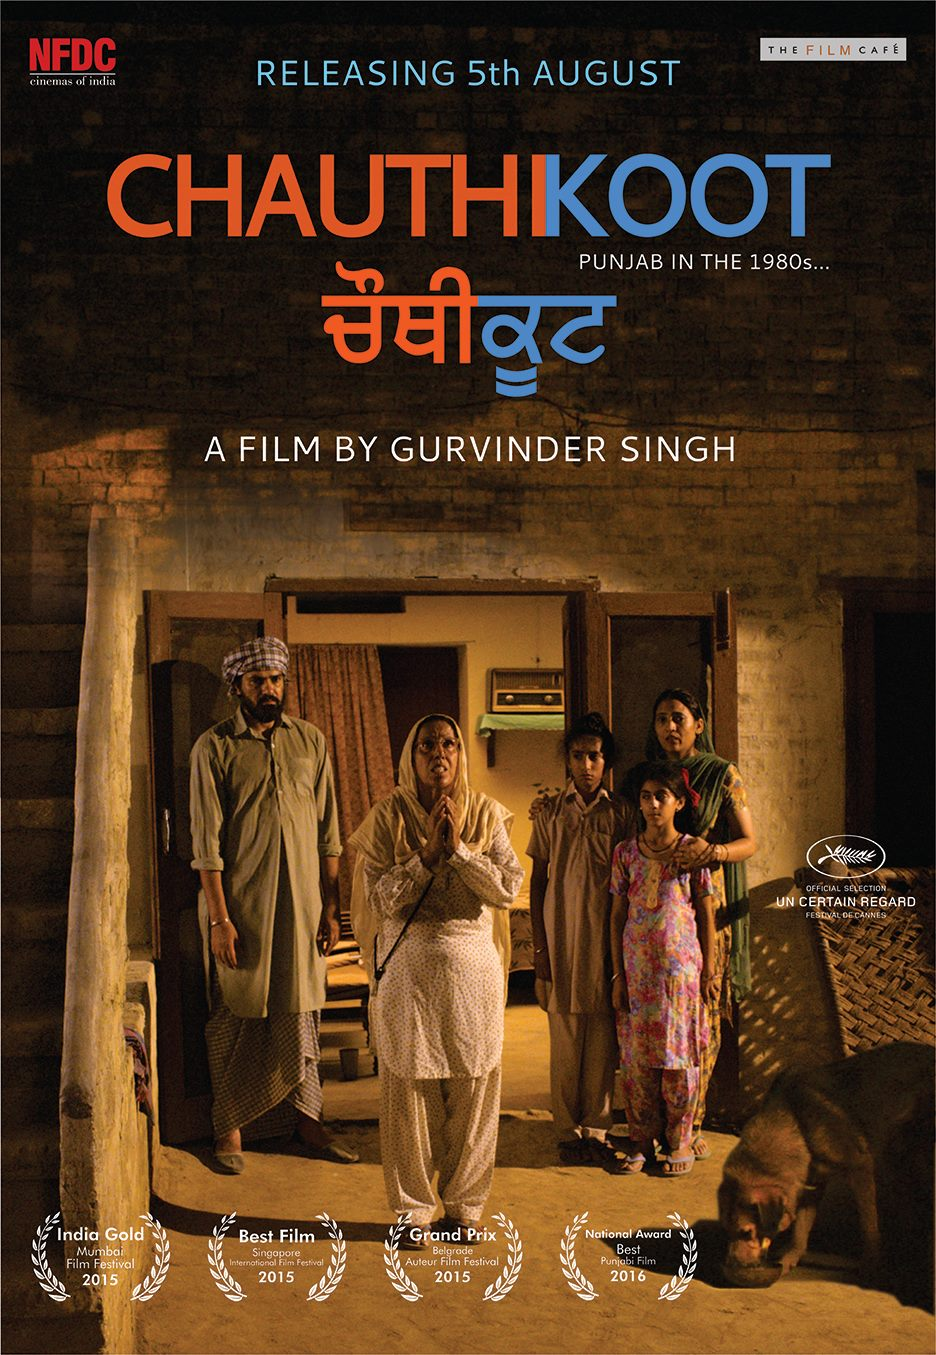 CHAUTHI KOOT (Punjabi) - A perfect example of cinematic art